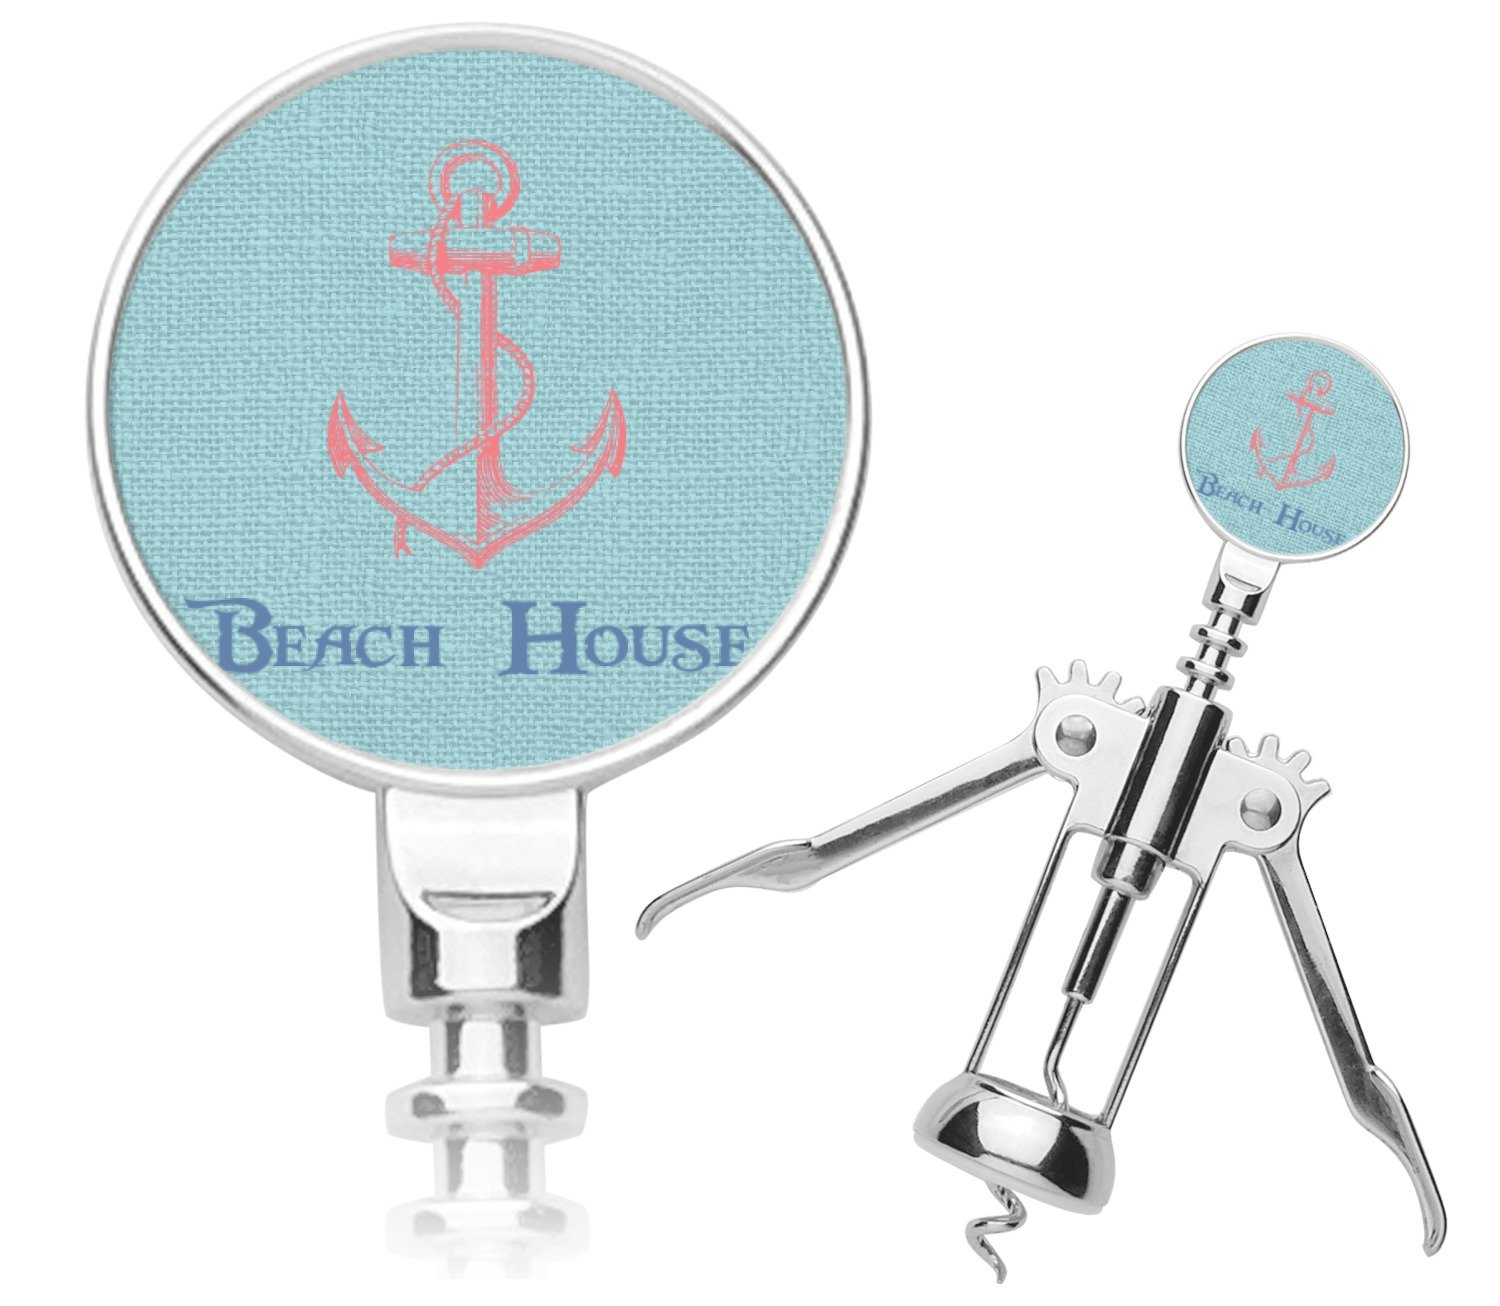 Chic Beach House Corkscrew